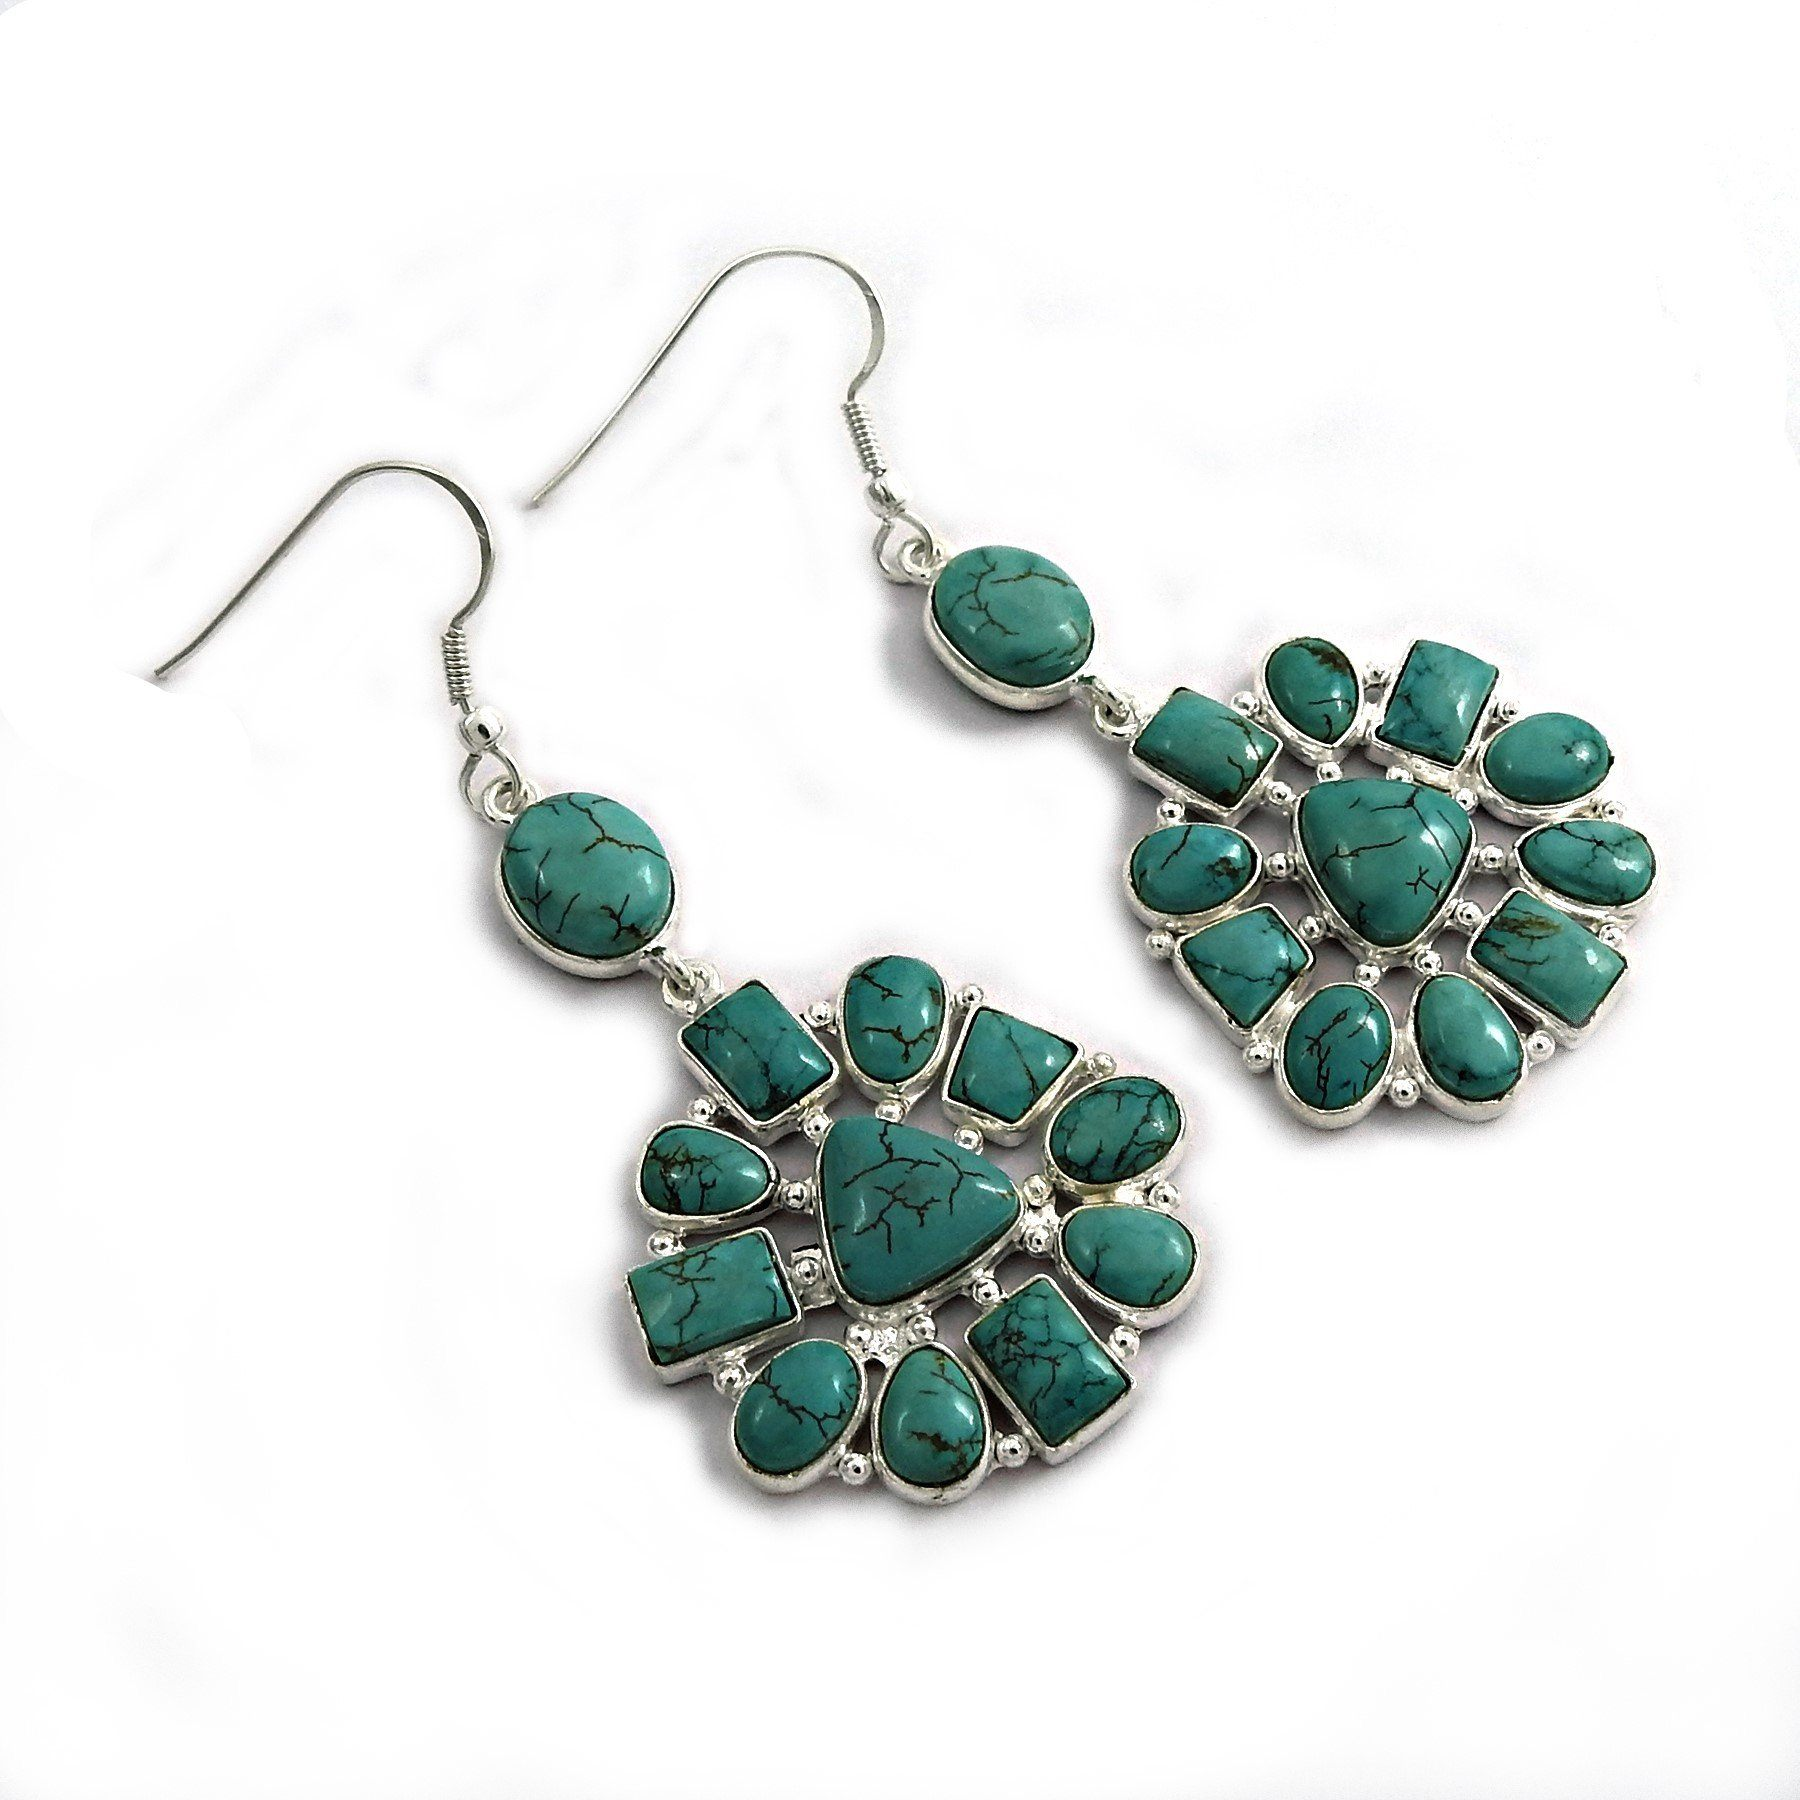 Handy 925 Sterling Silver Turquoise Gemstone Earring Ethnic Jewelry